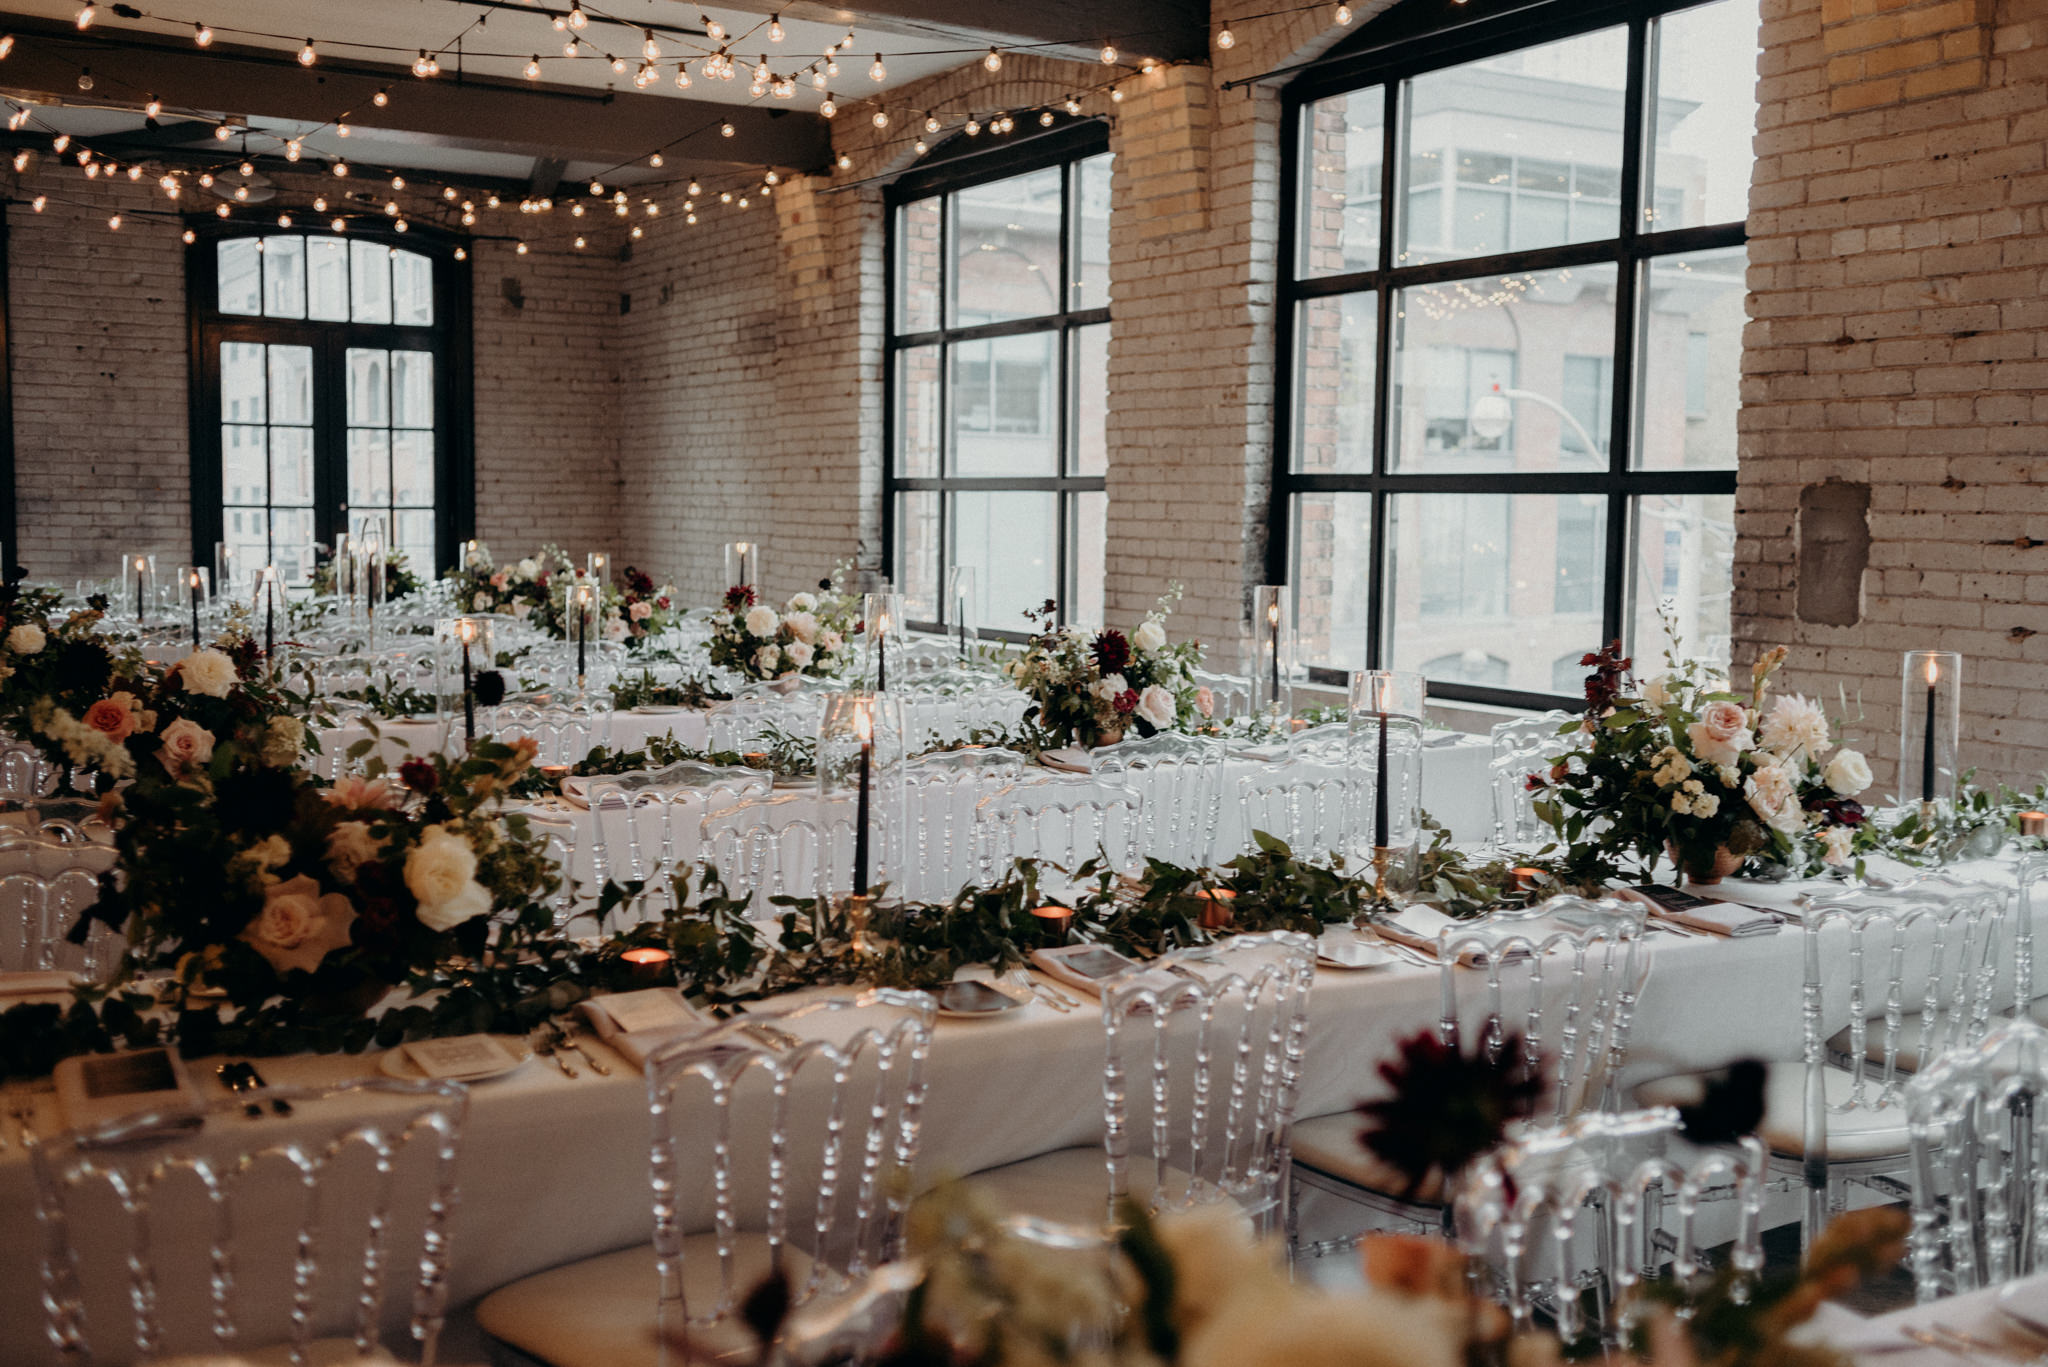 Loft wedding reception with string lights and candles on long harvest tables with lots of flowers